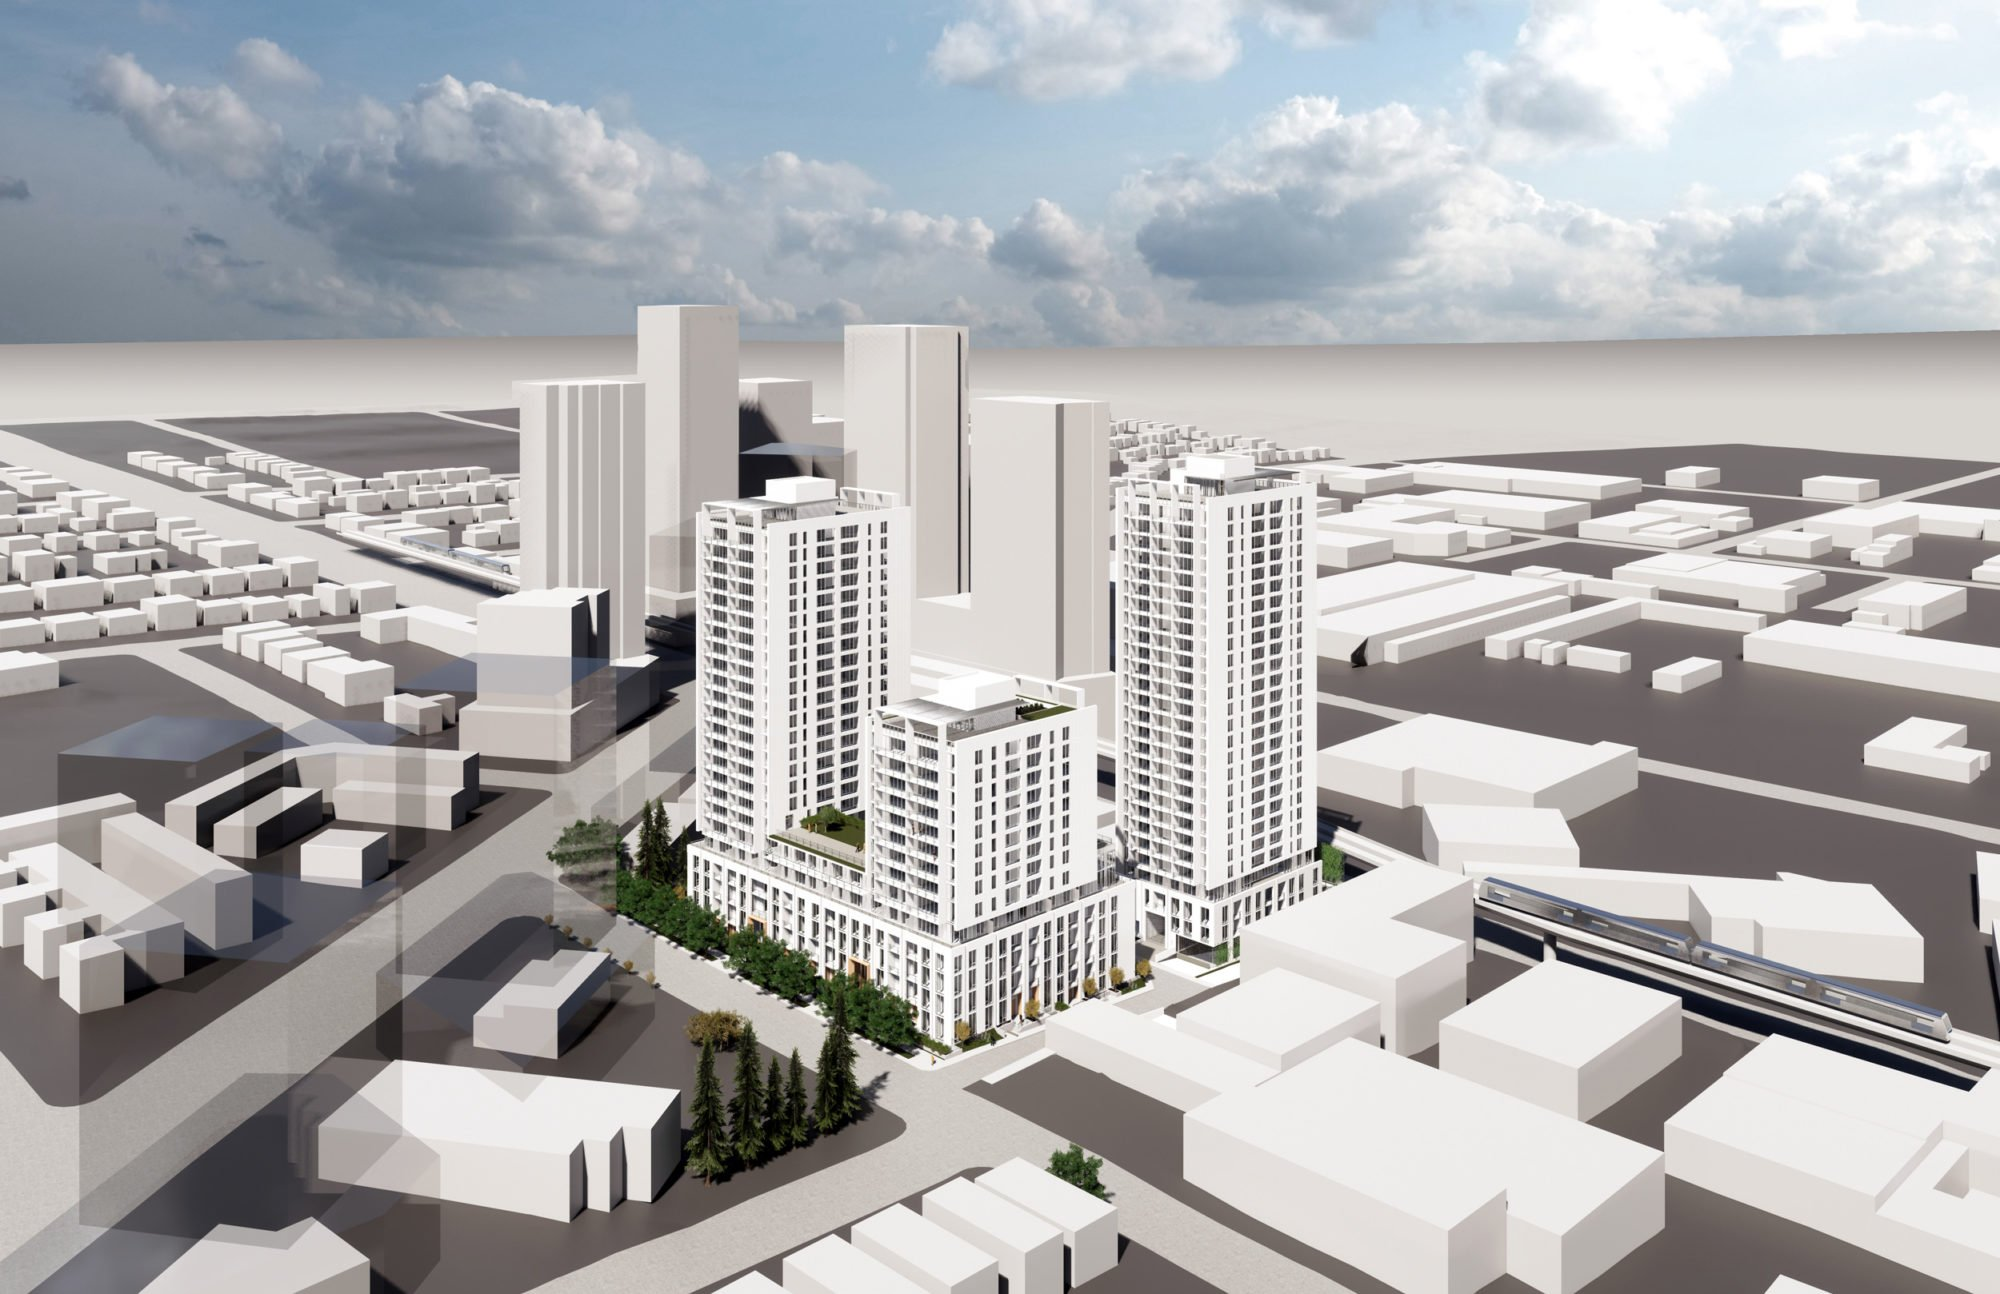 Nearly 600 rental and co-op units slated for SW Marine Drive and Cambie